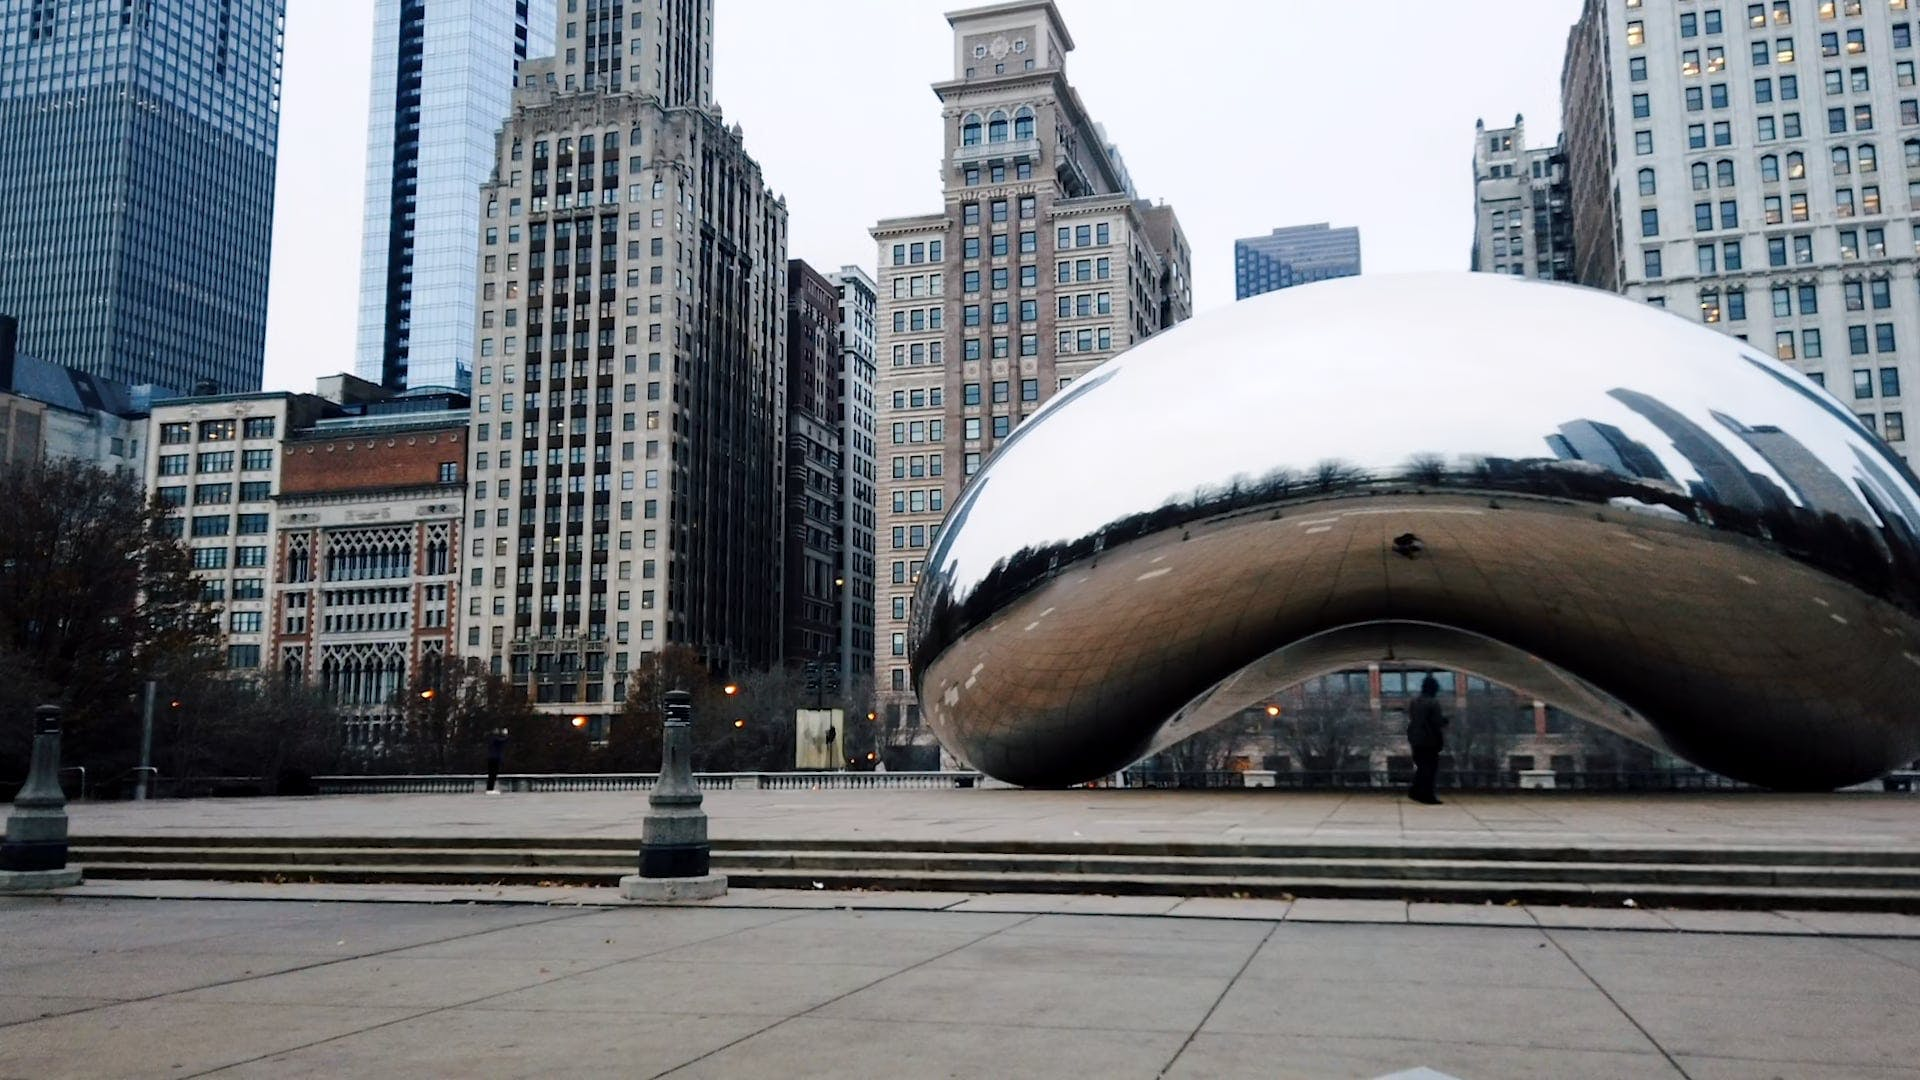 The Bean - Chicago's Millennium Park